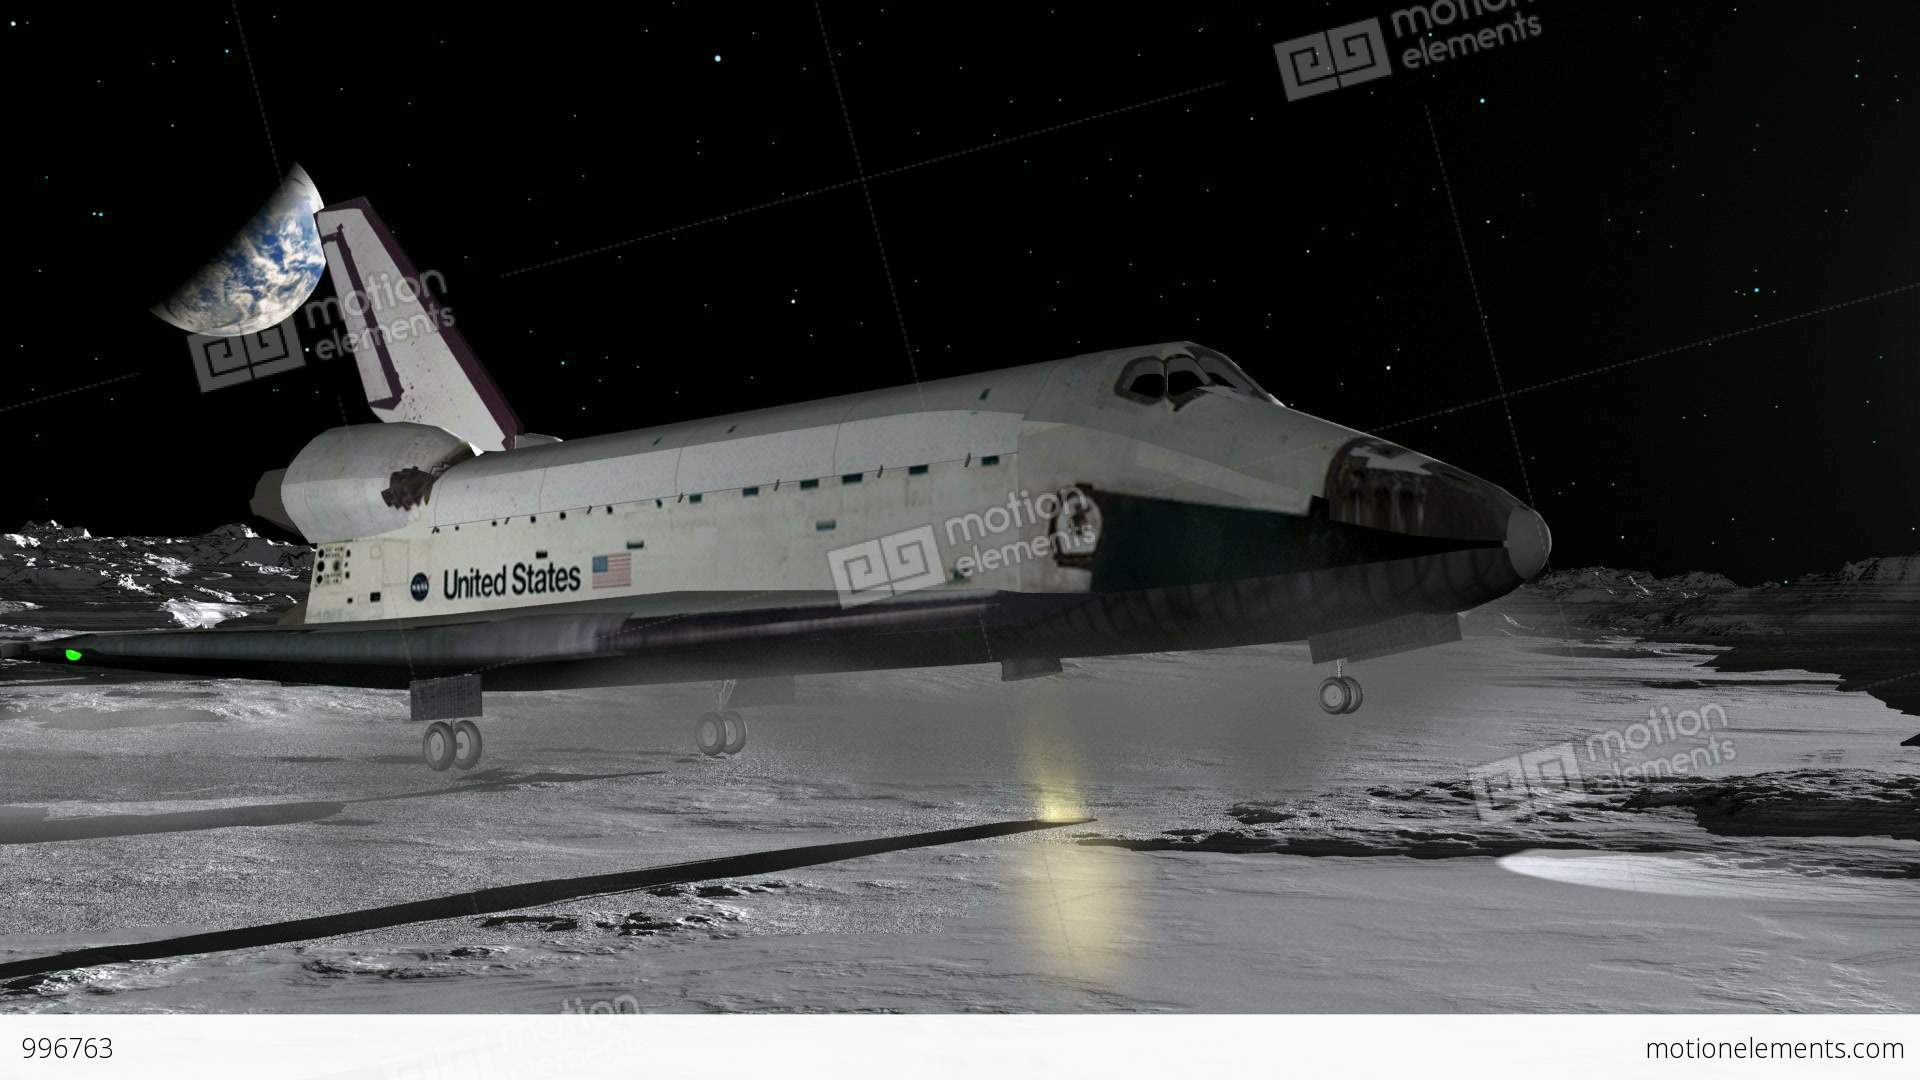 space shuttle crashing on the moon - photo #3